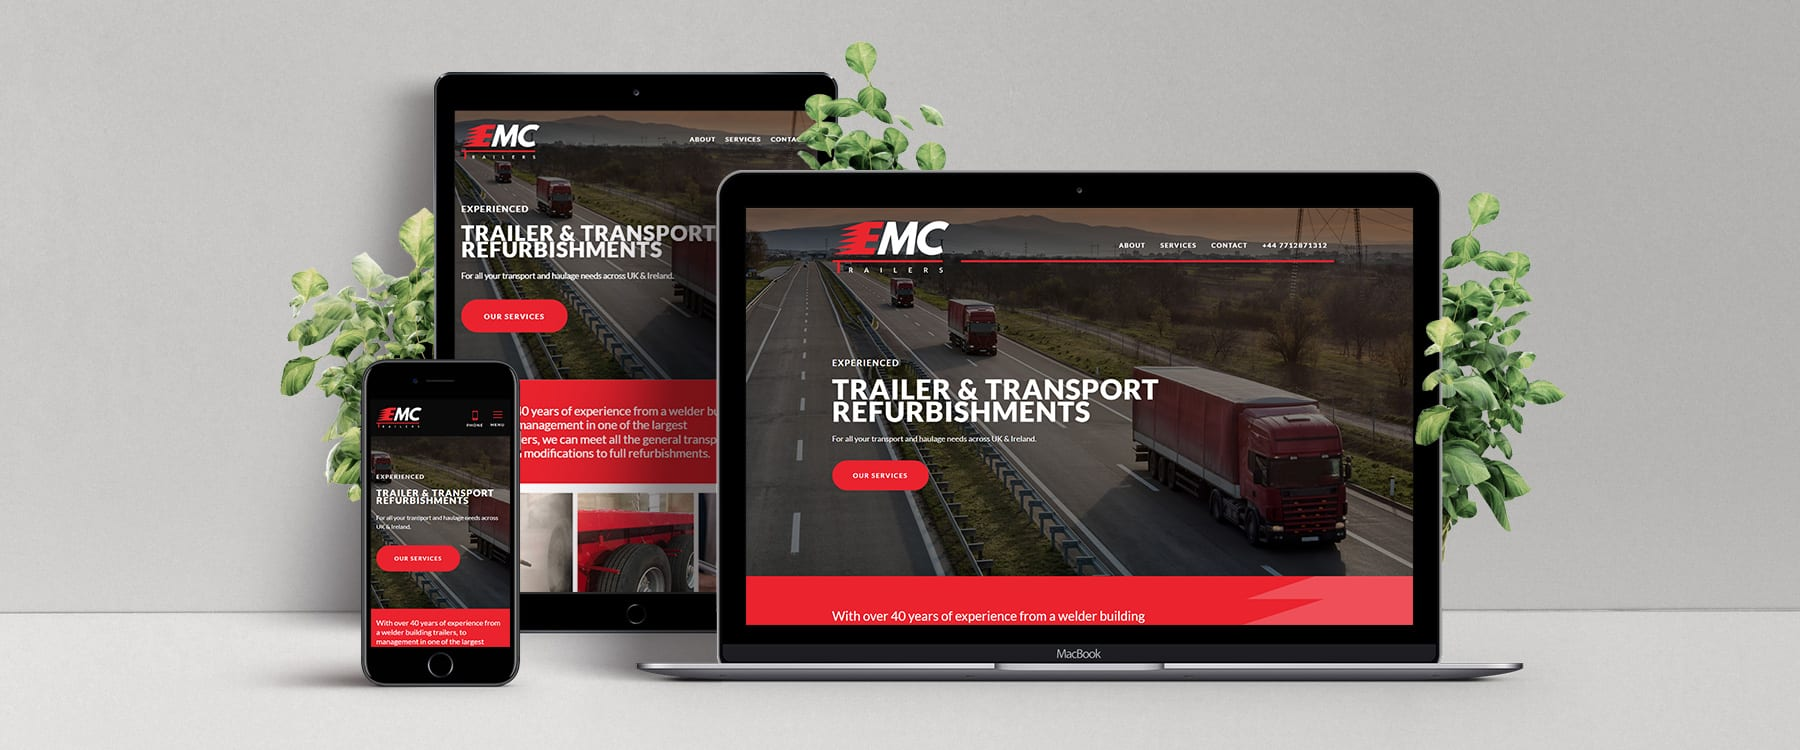 Trailer & Transport Refurbishment Specialists, EMC Trailers, Launch Brand New website Image